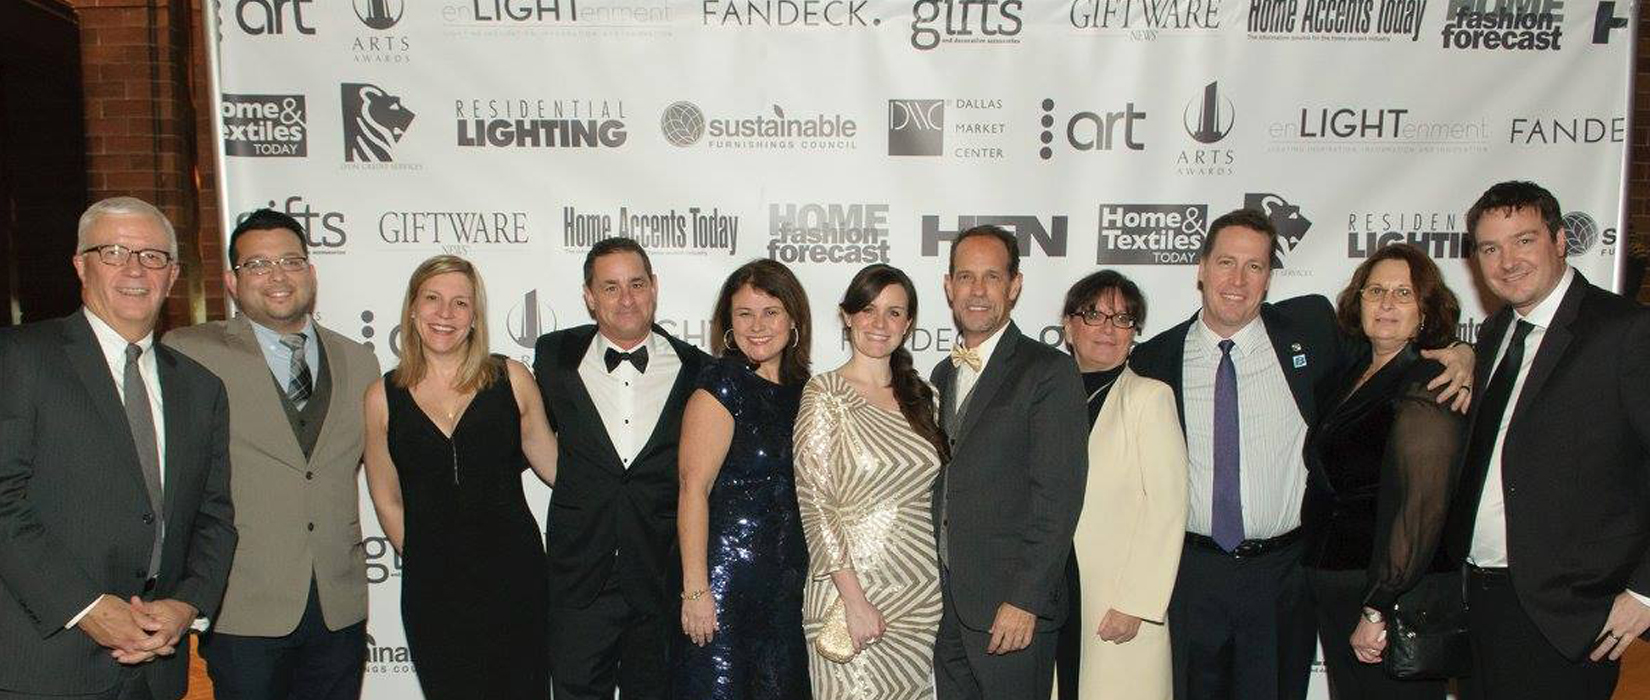 An exuberant team from Hubbardton Forge at the 27th Annual ARTS Awards in Dallas